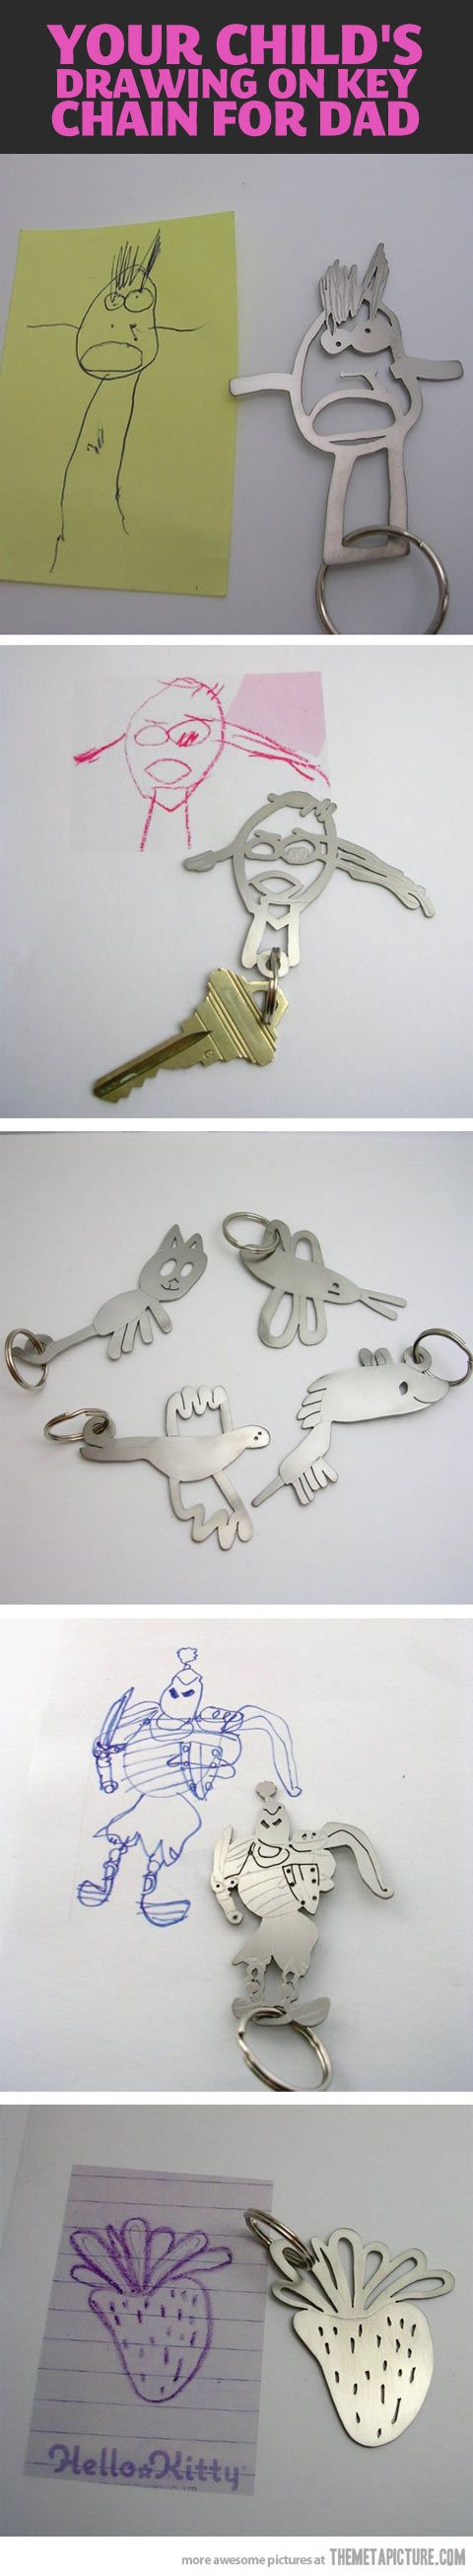 Your child's drawing on a key chain